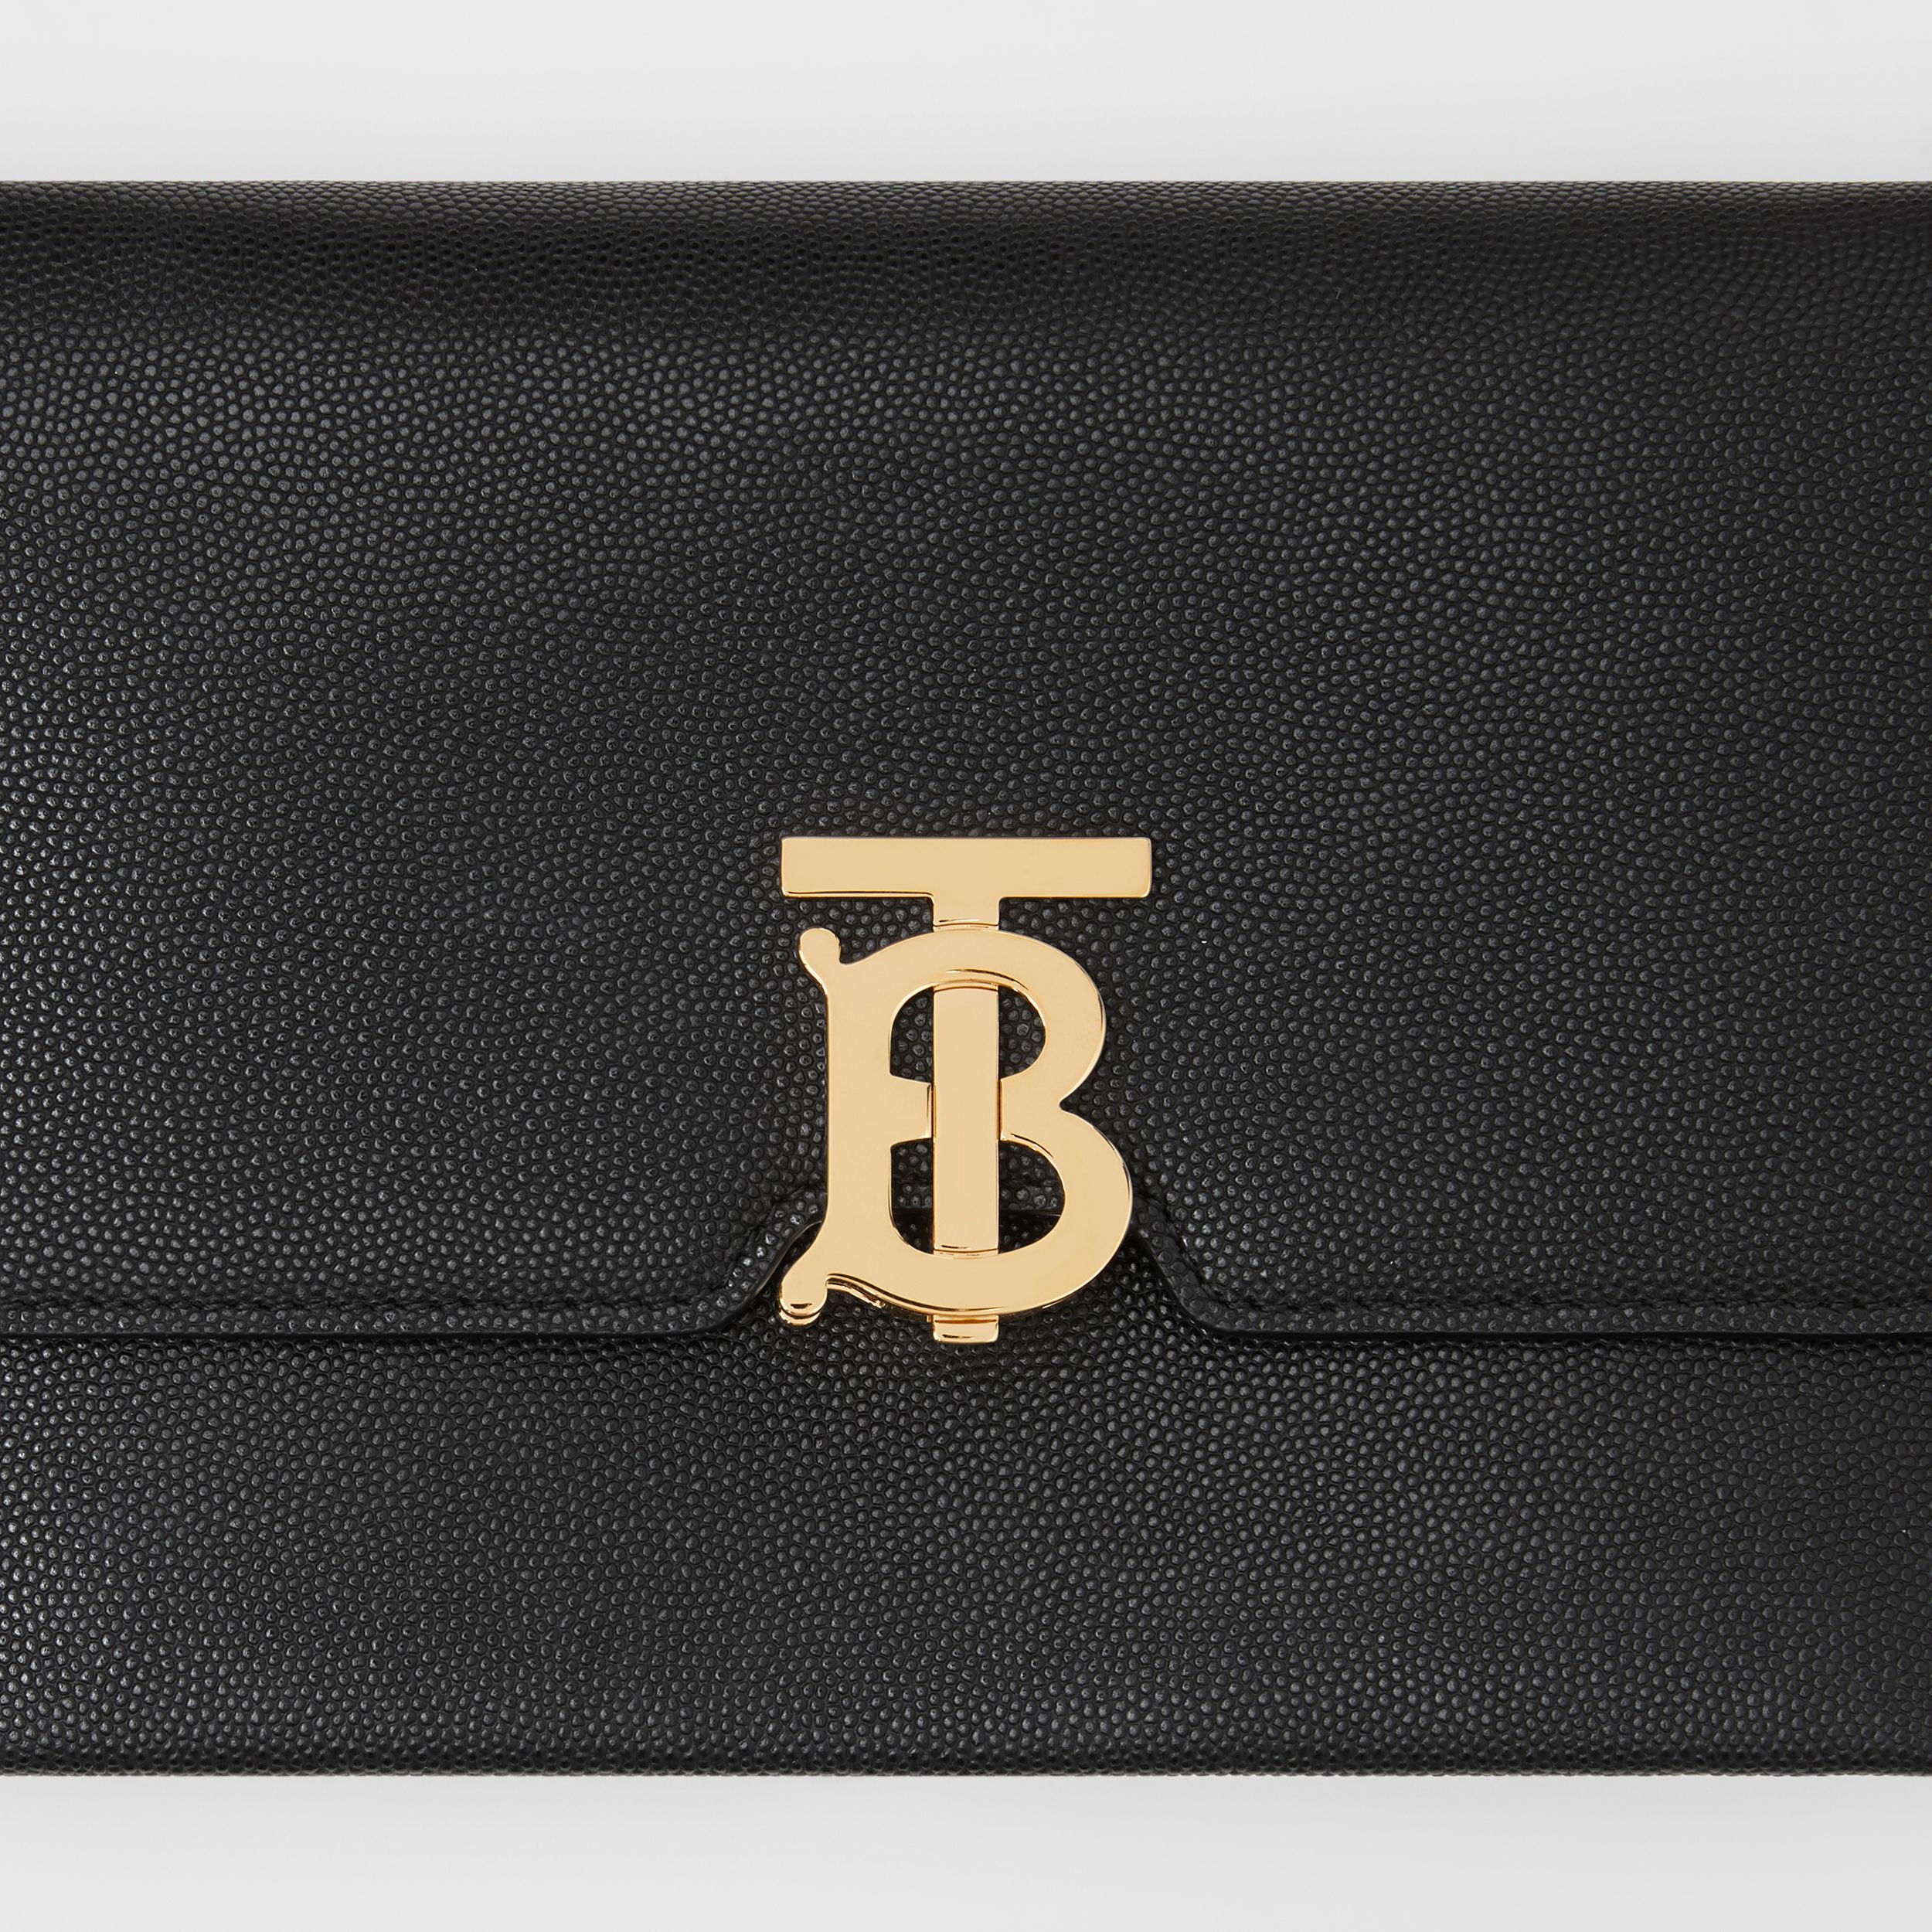 Small Monogram Motif Leather Crossbody Bag in Black - Women | Burberry - 2